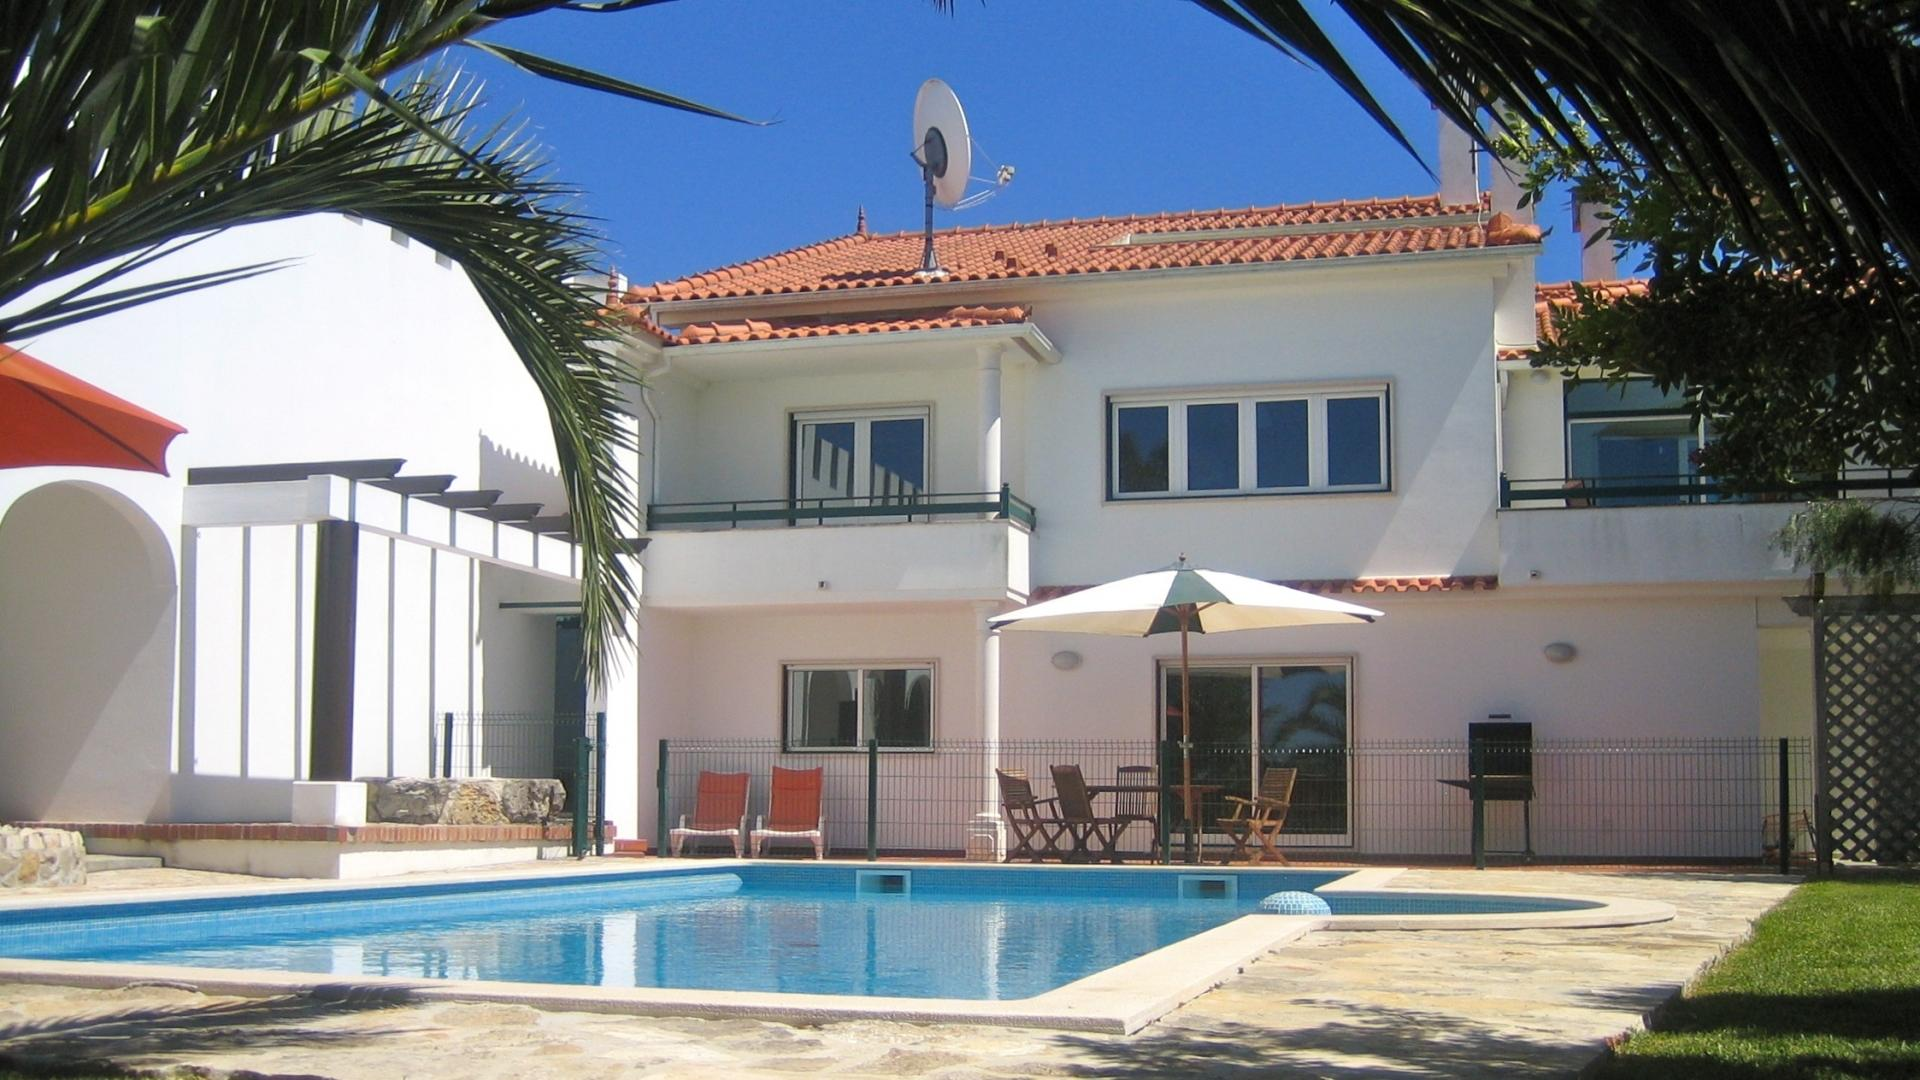 3 Bedroom Apartment in  Portugal